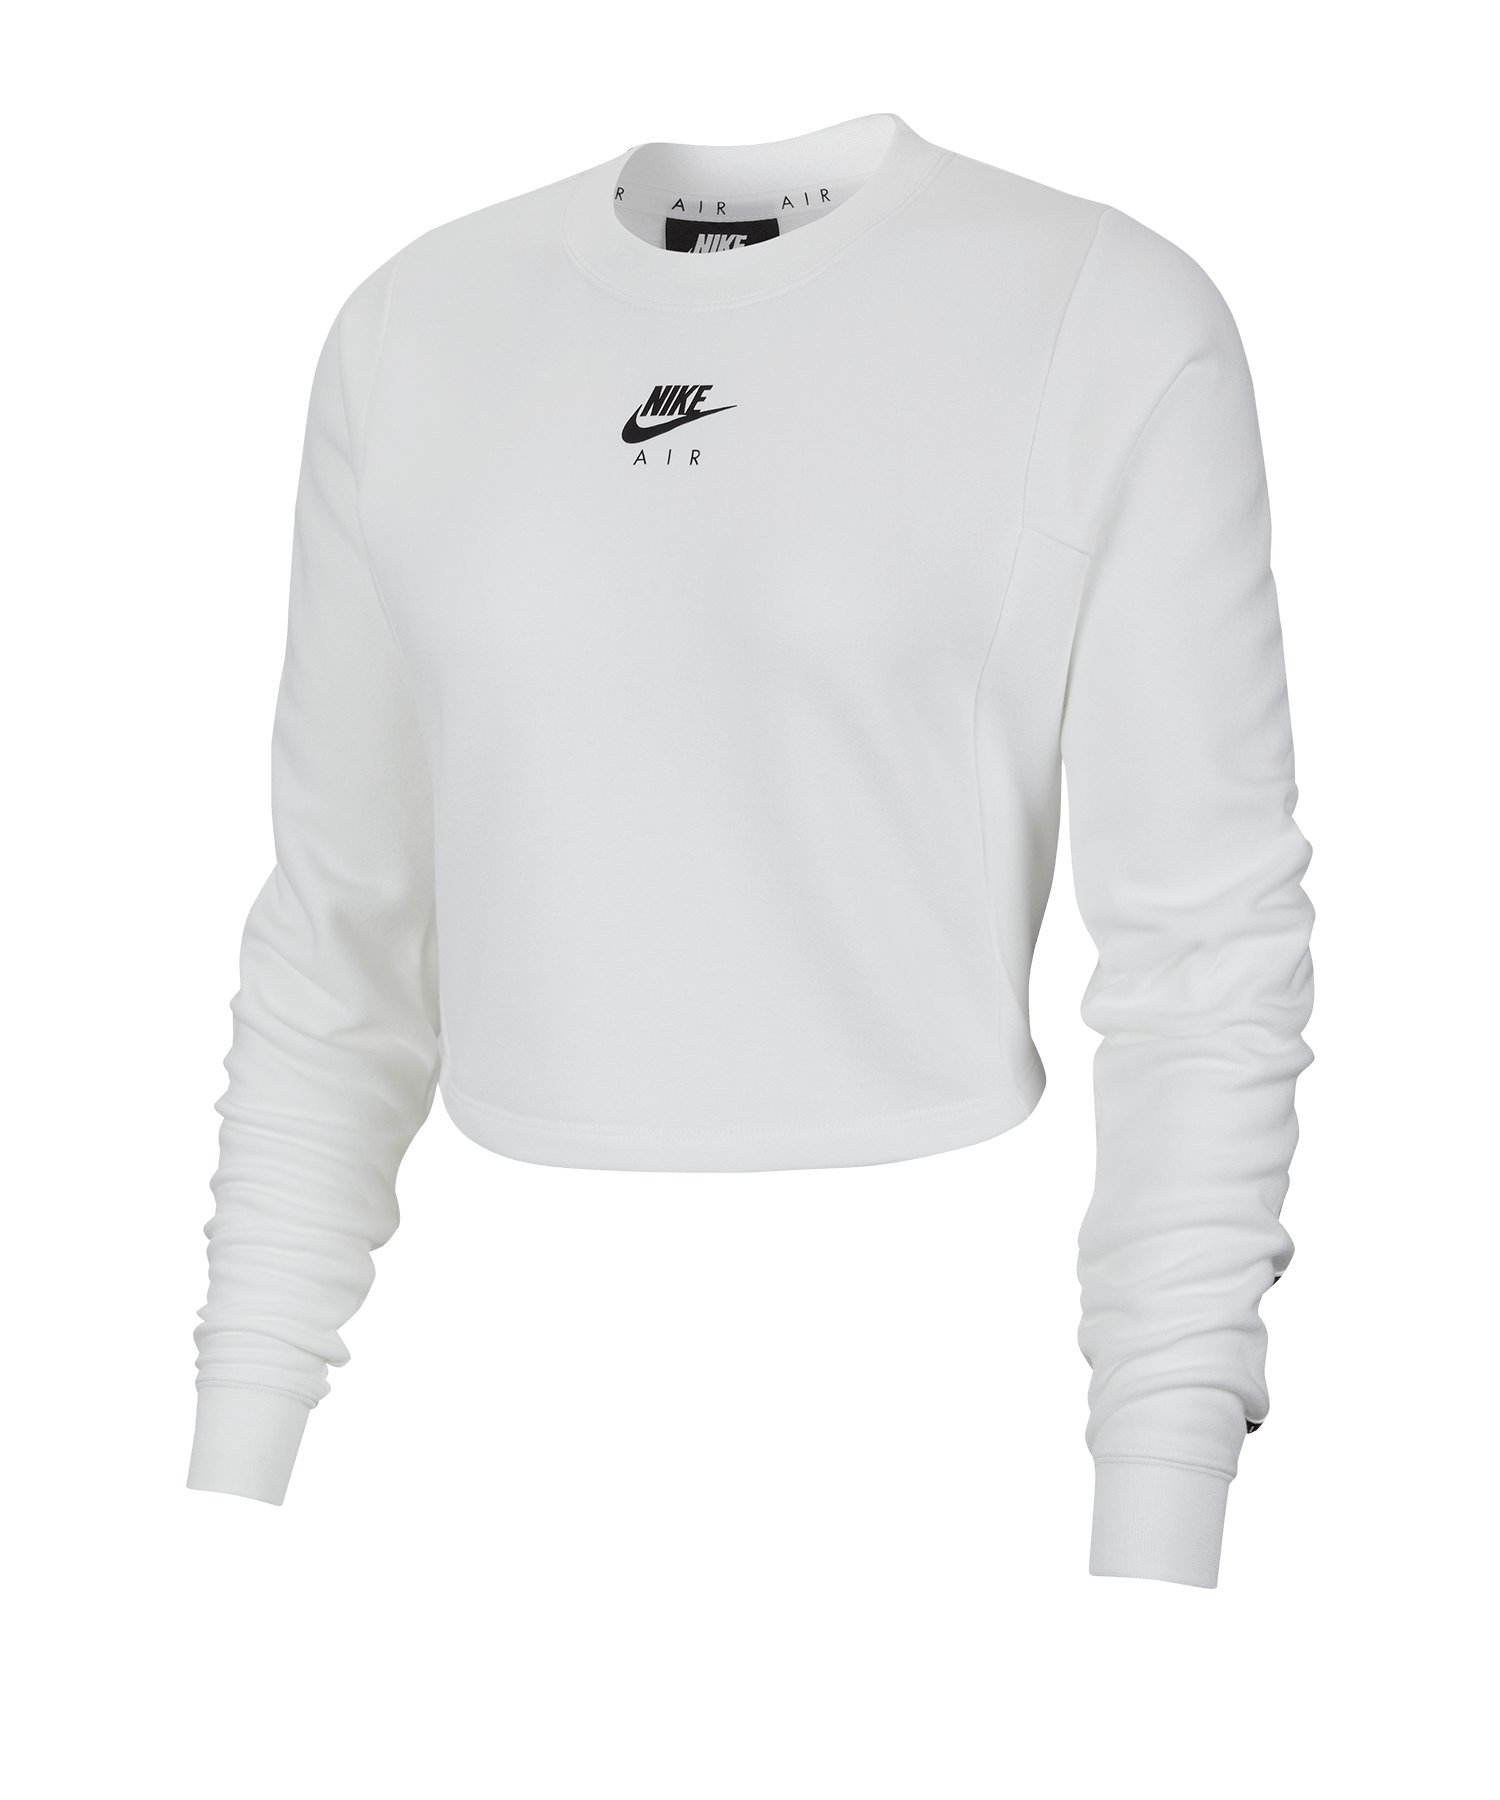 Nike Air Crew Sweatshirt Damen Weiss F100 - weiss